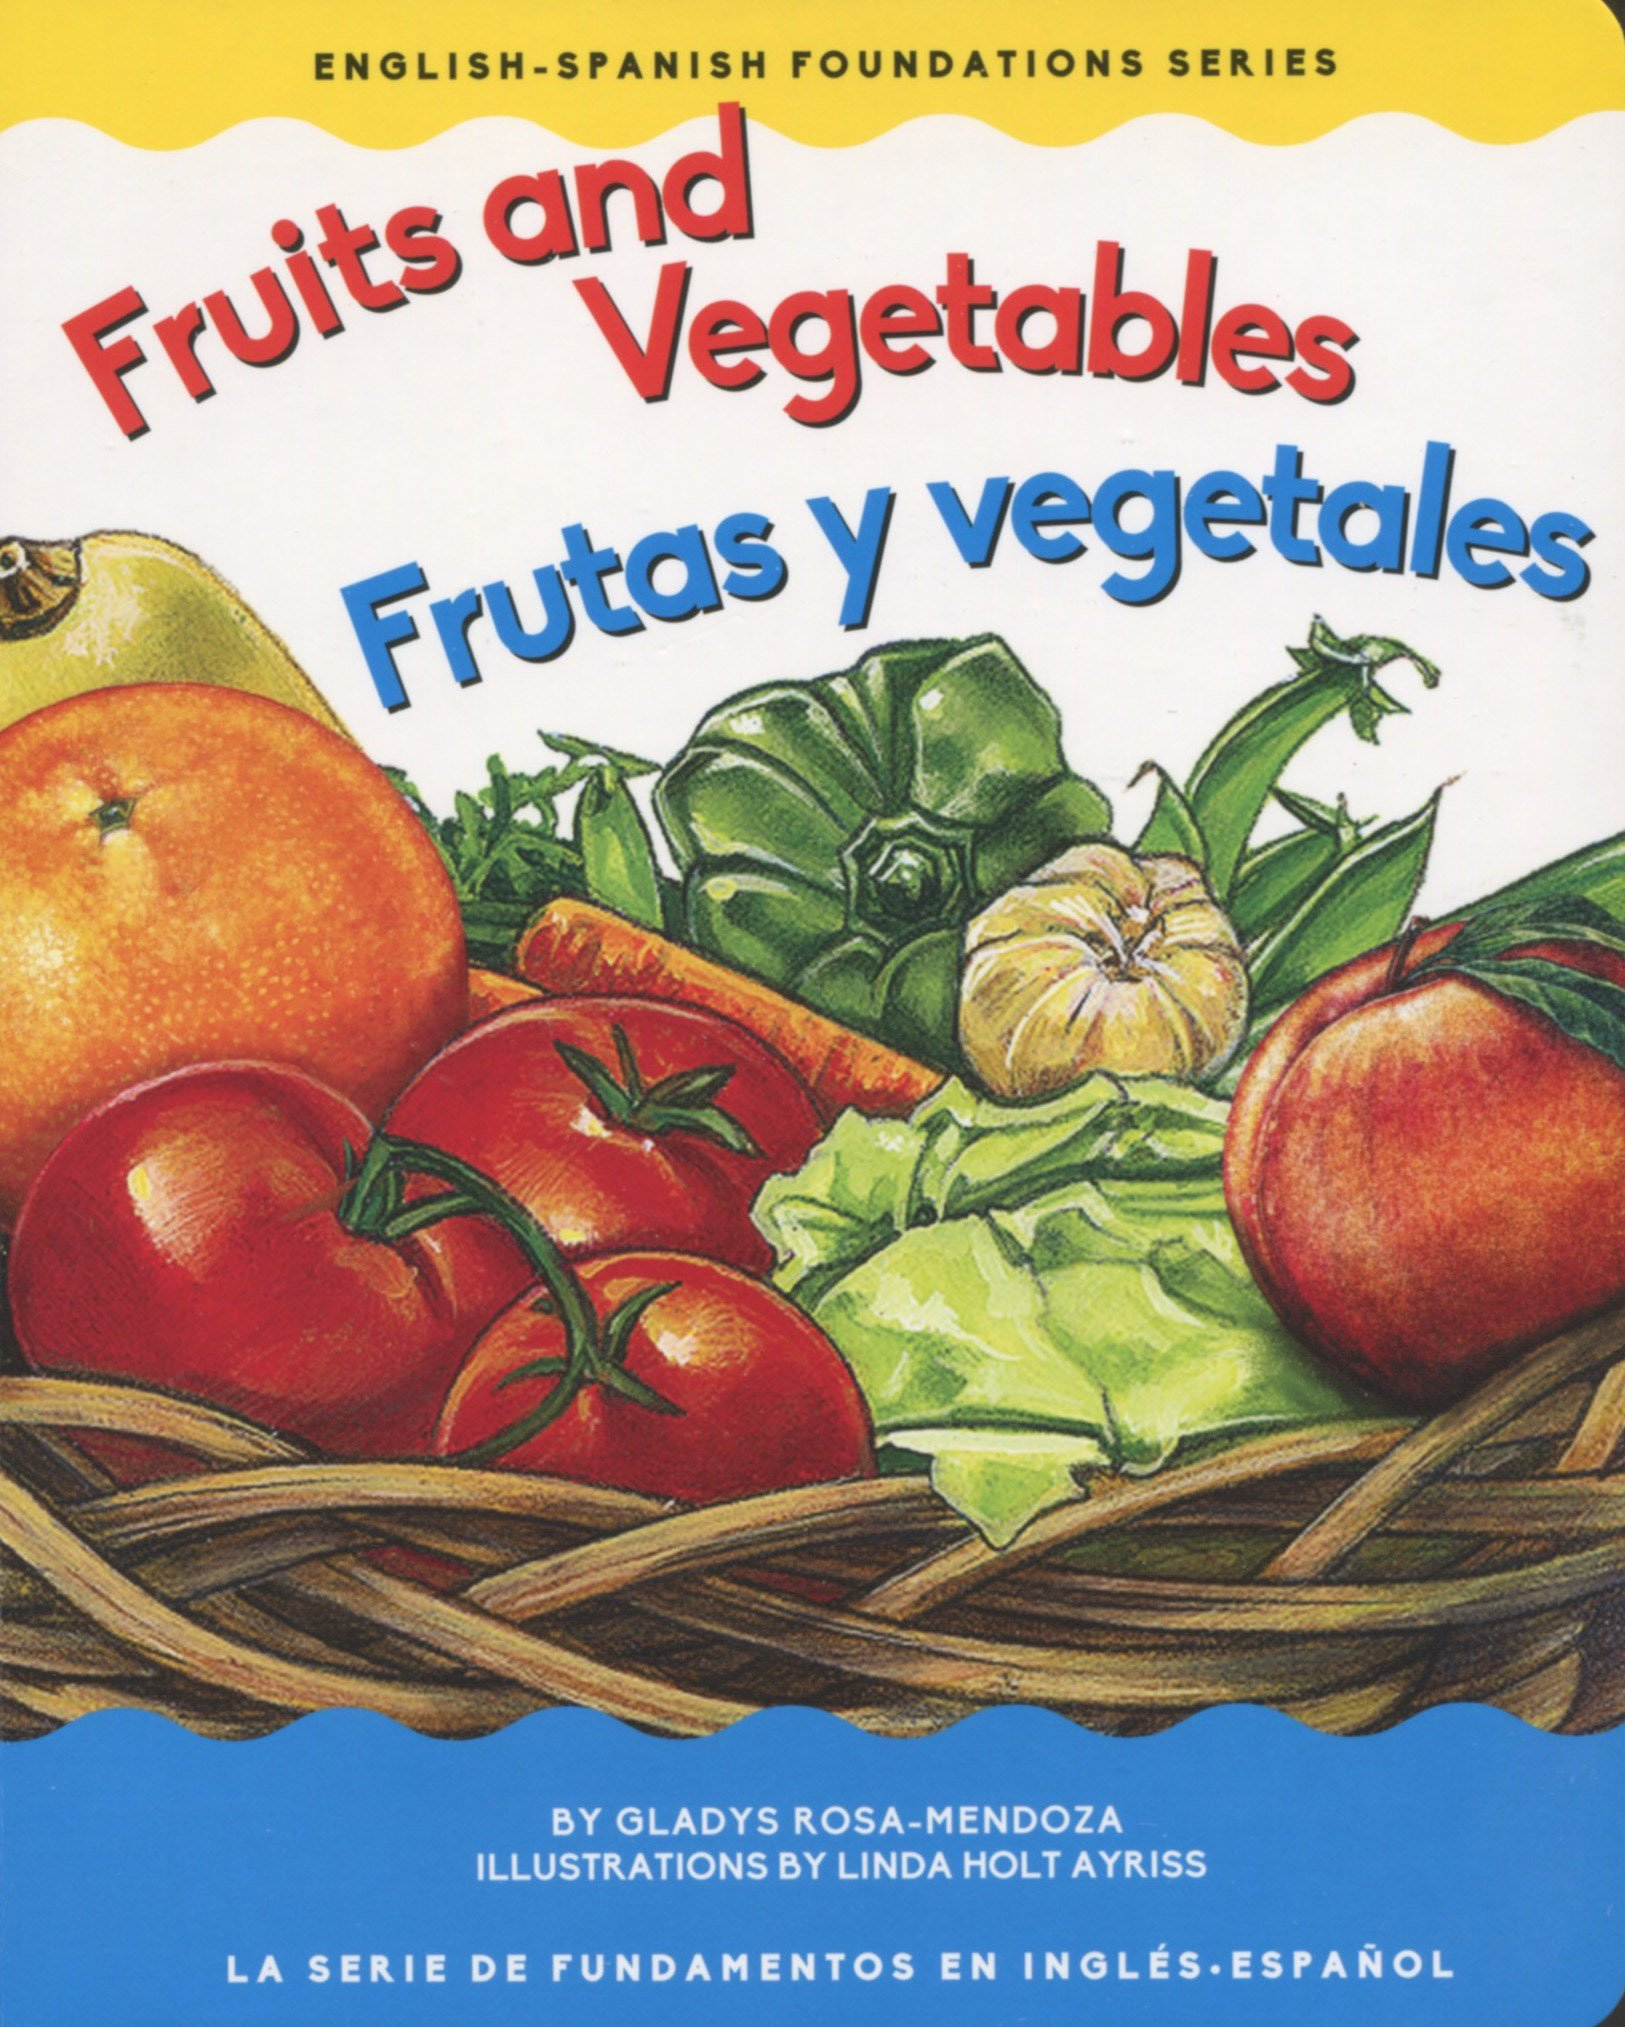 Download Fruits and Vegetables / Frutas y vegetales (English-Spanish Foundations Series) (English and Spanish Edition) ebook